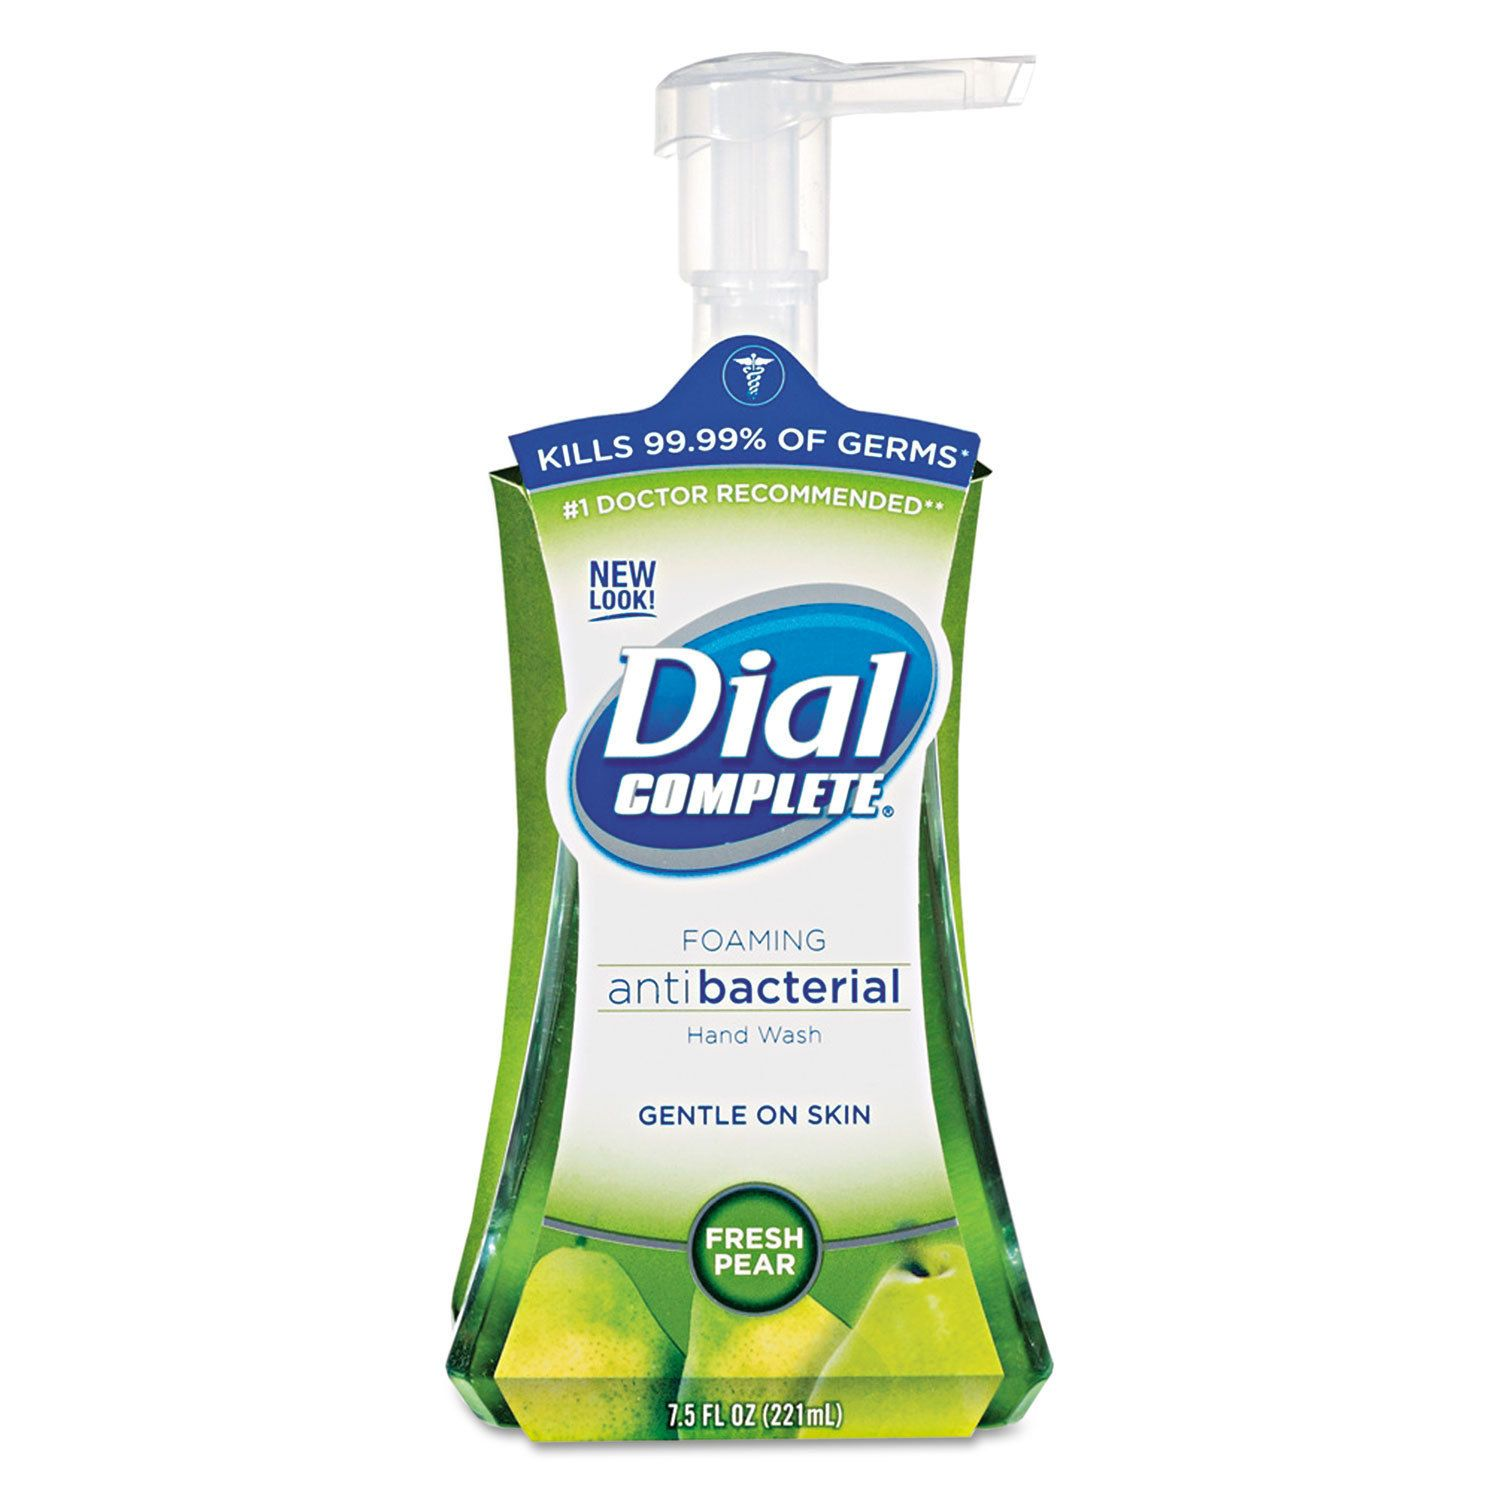 Dial Professional Antimicrobial Foaming Hand Soap Fresh Pear 7 5